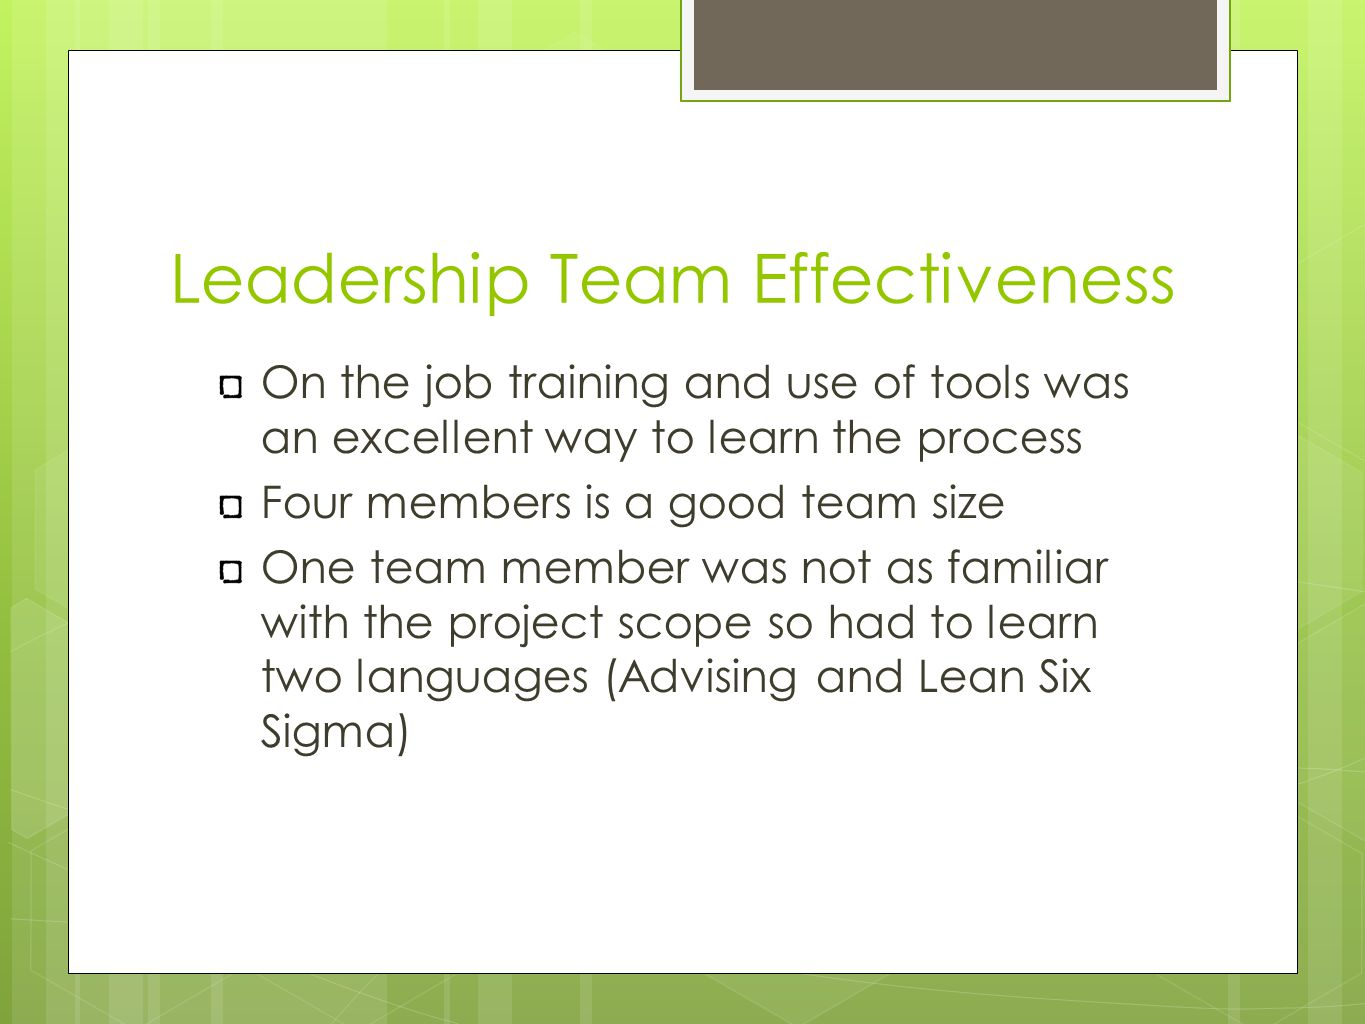 Leadership Team Effectiveness On the job training and use of tools was an excellent way to learn the process Four members is a good team size One team member was not as familiar with the project scope so had to learn two languages (Advising and Lean Six Sigma)